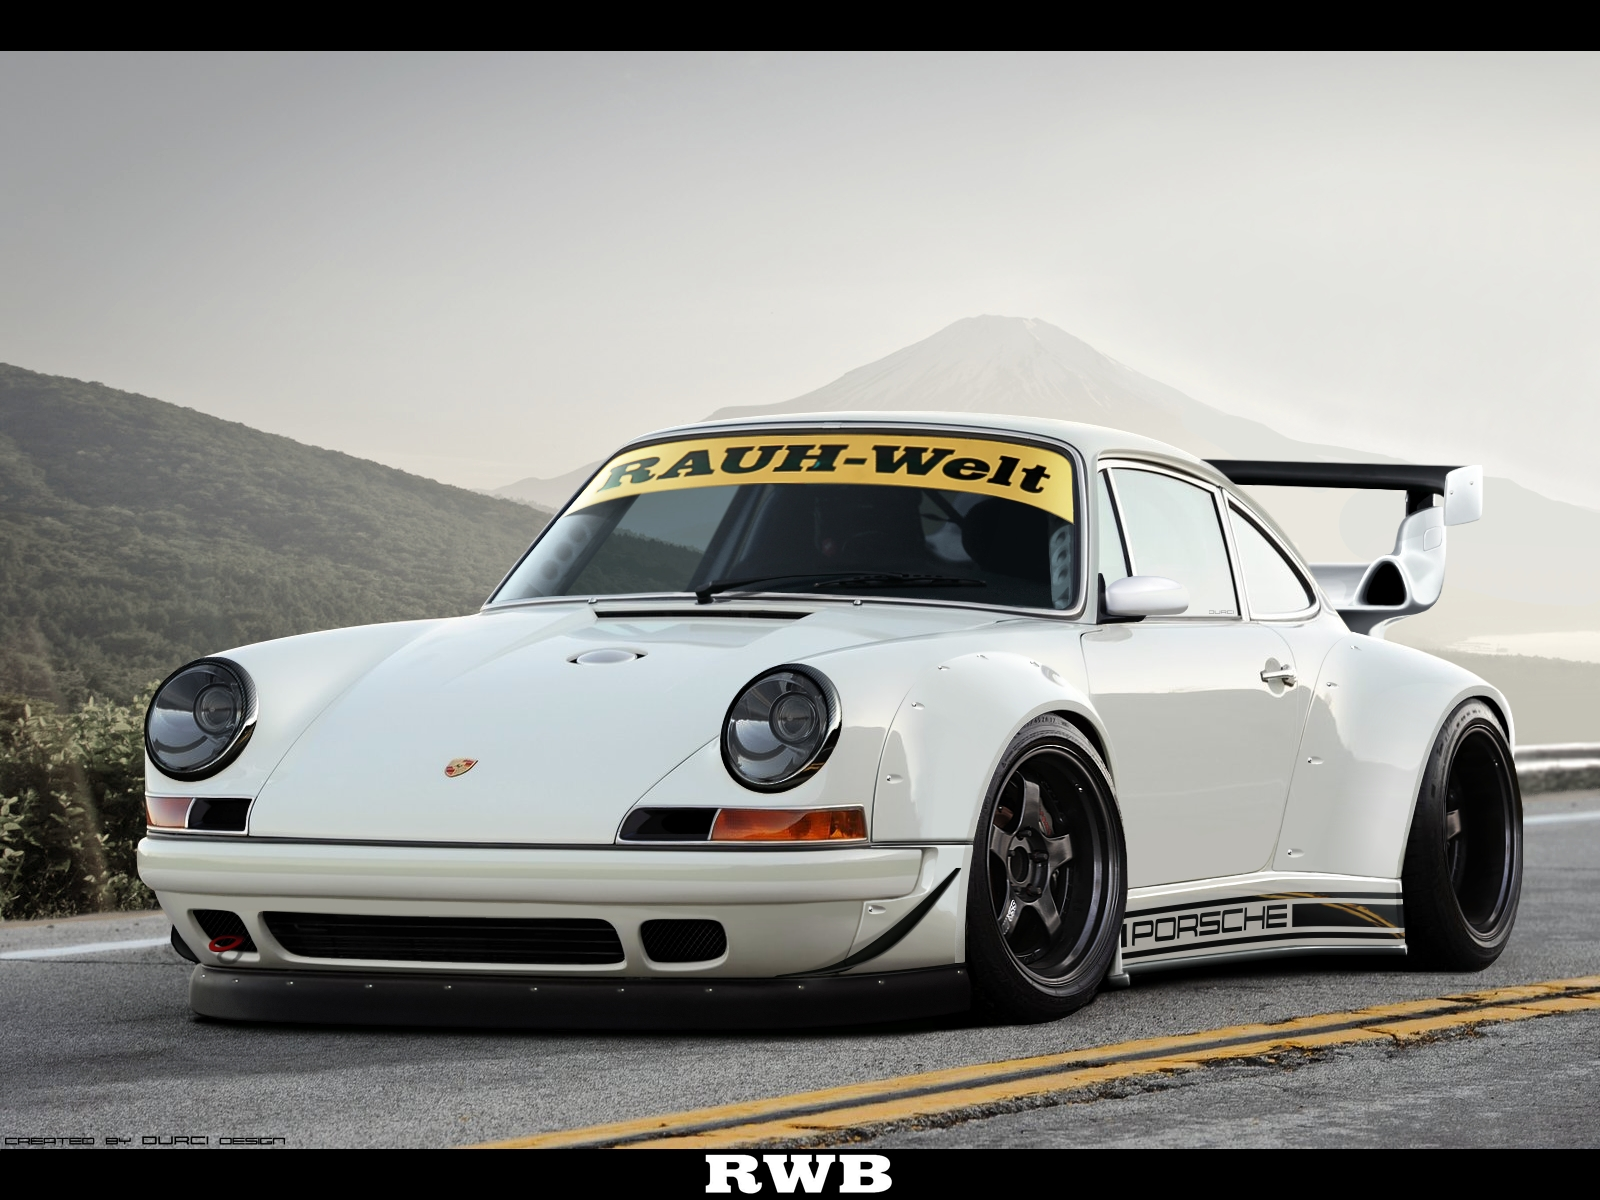 rwb rauh welt begriff japanese porsche tuner page 3 acurazine acura enthusiast community. Black Bedroom Furniture Sets. Home Design Ideas